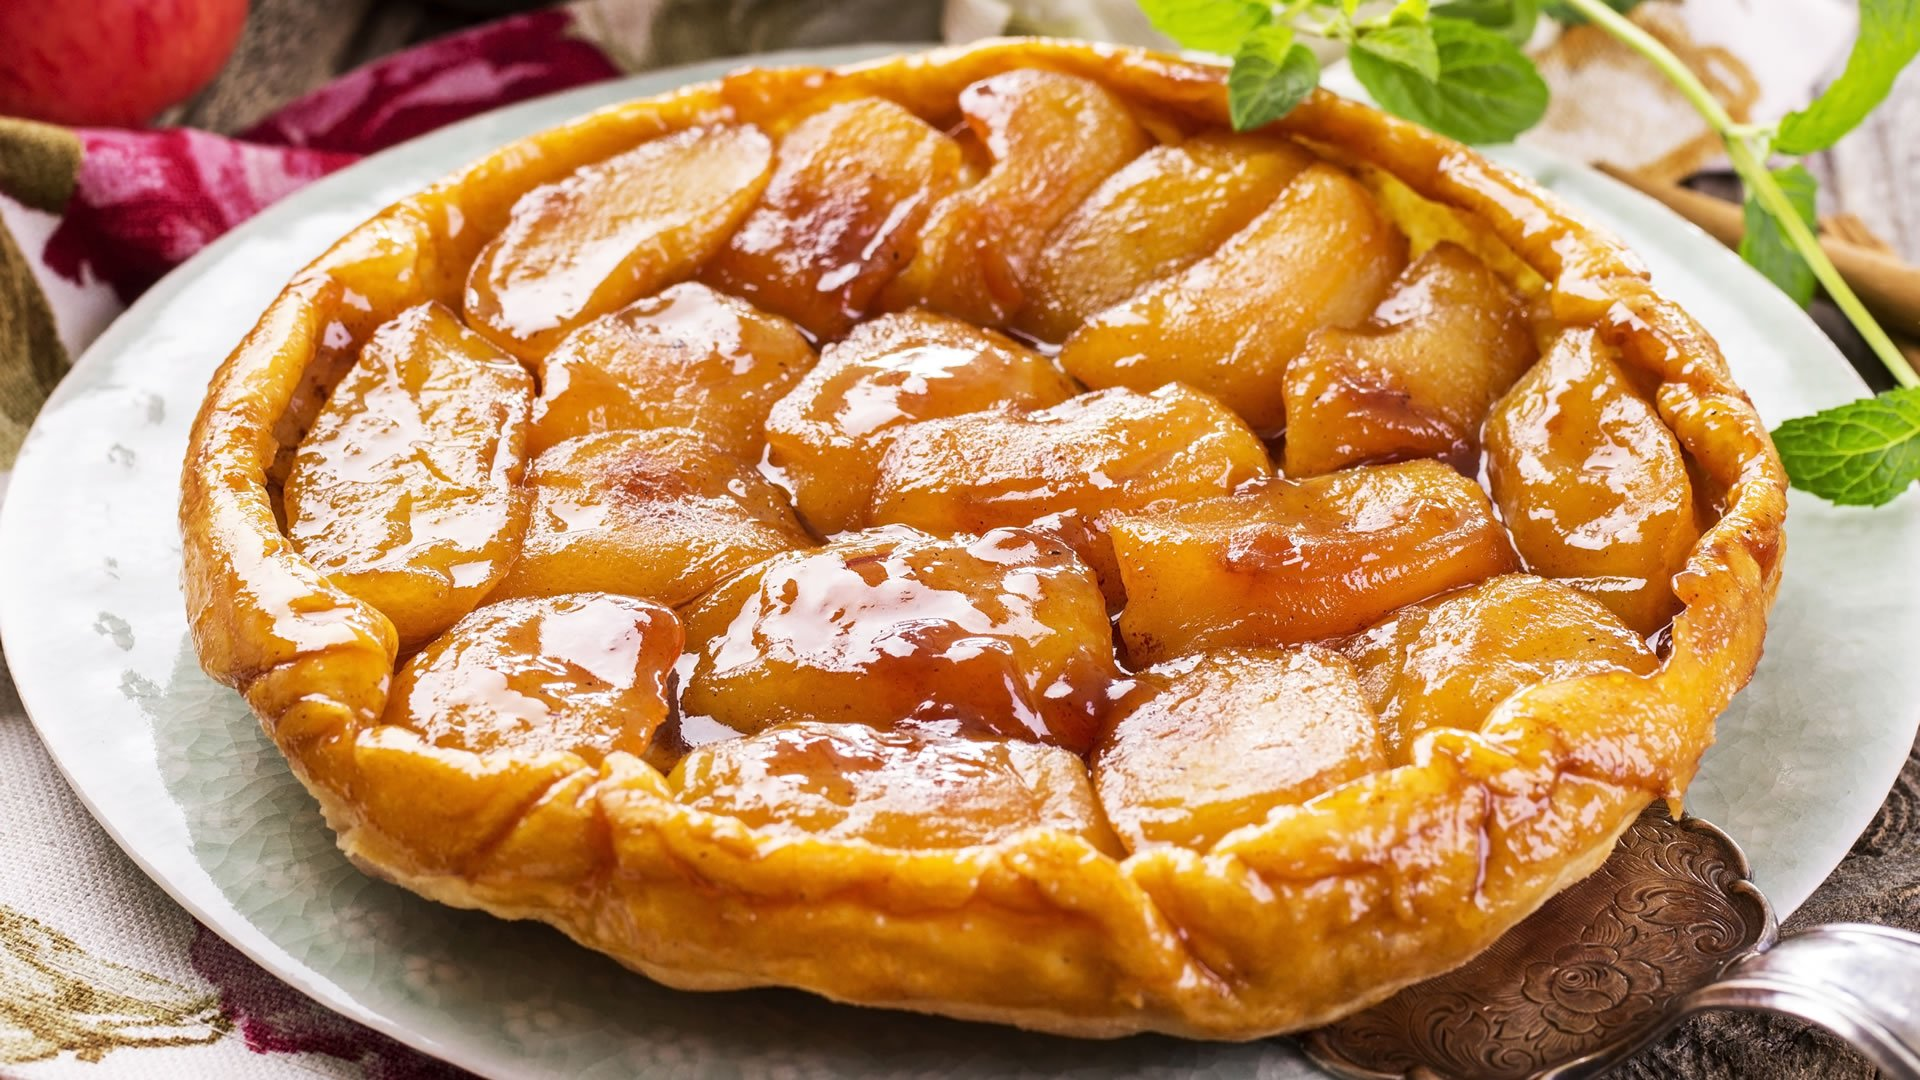 Tarte tat n for Paris francia comida tipica